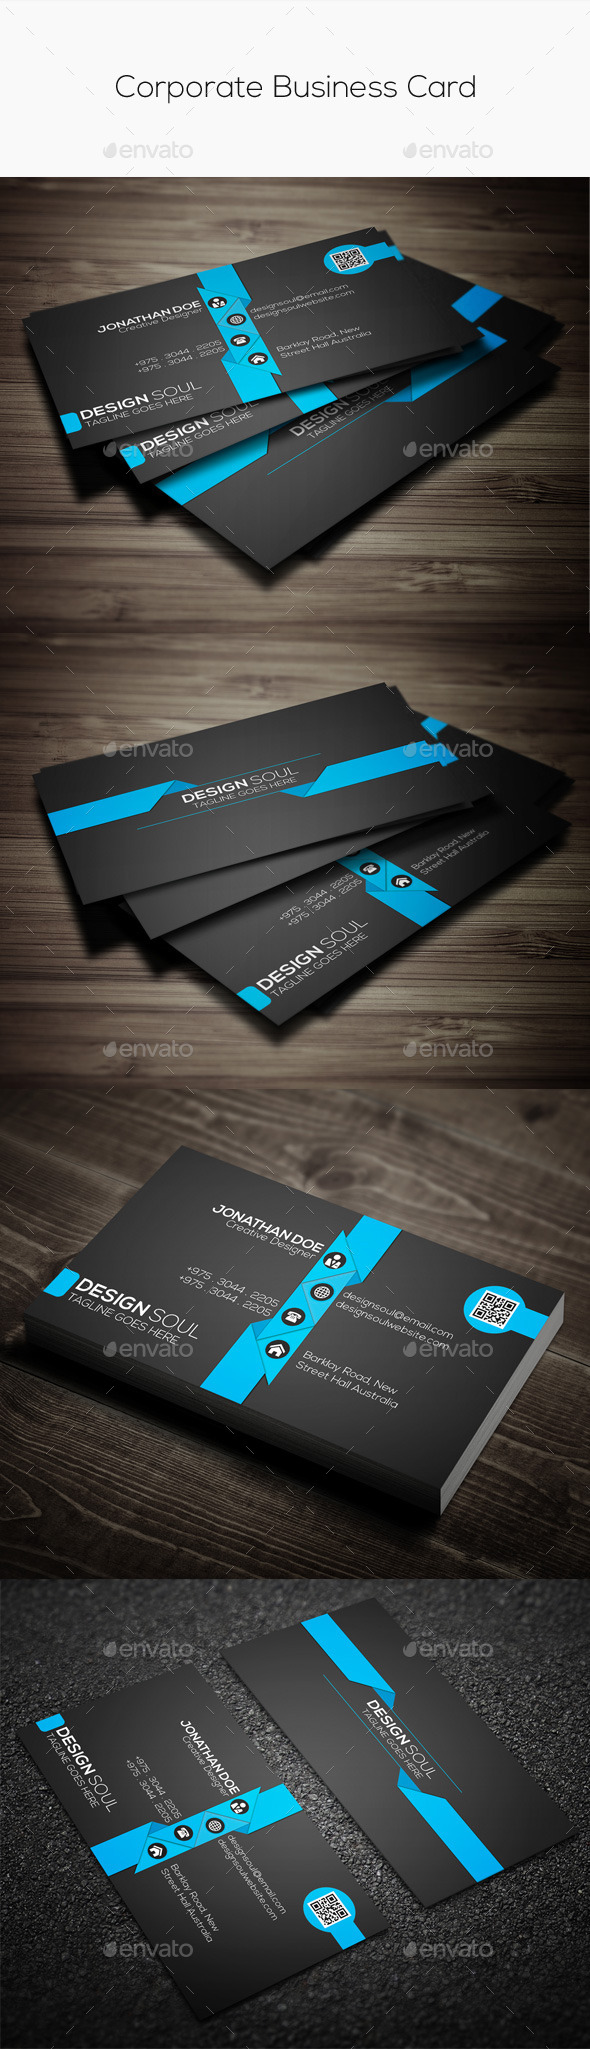 GraphicRiver Corporate Business Card 9721246